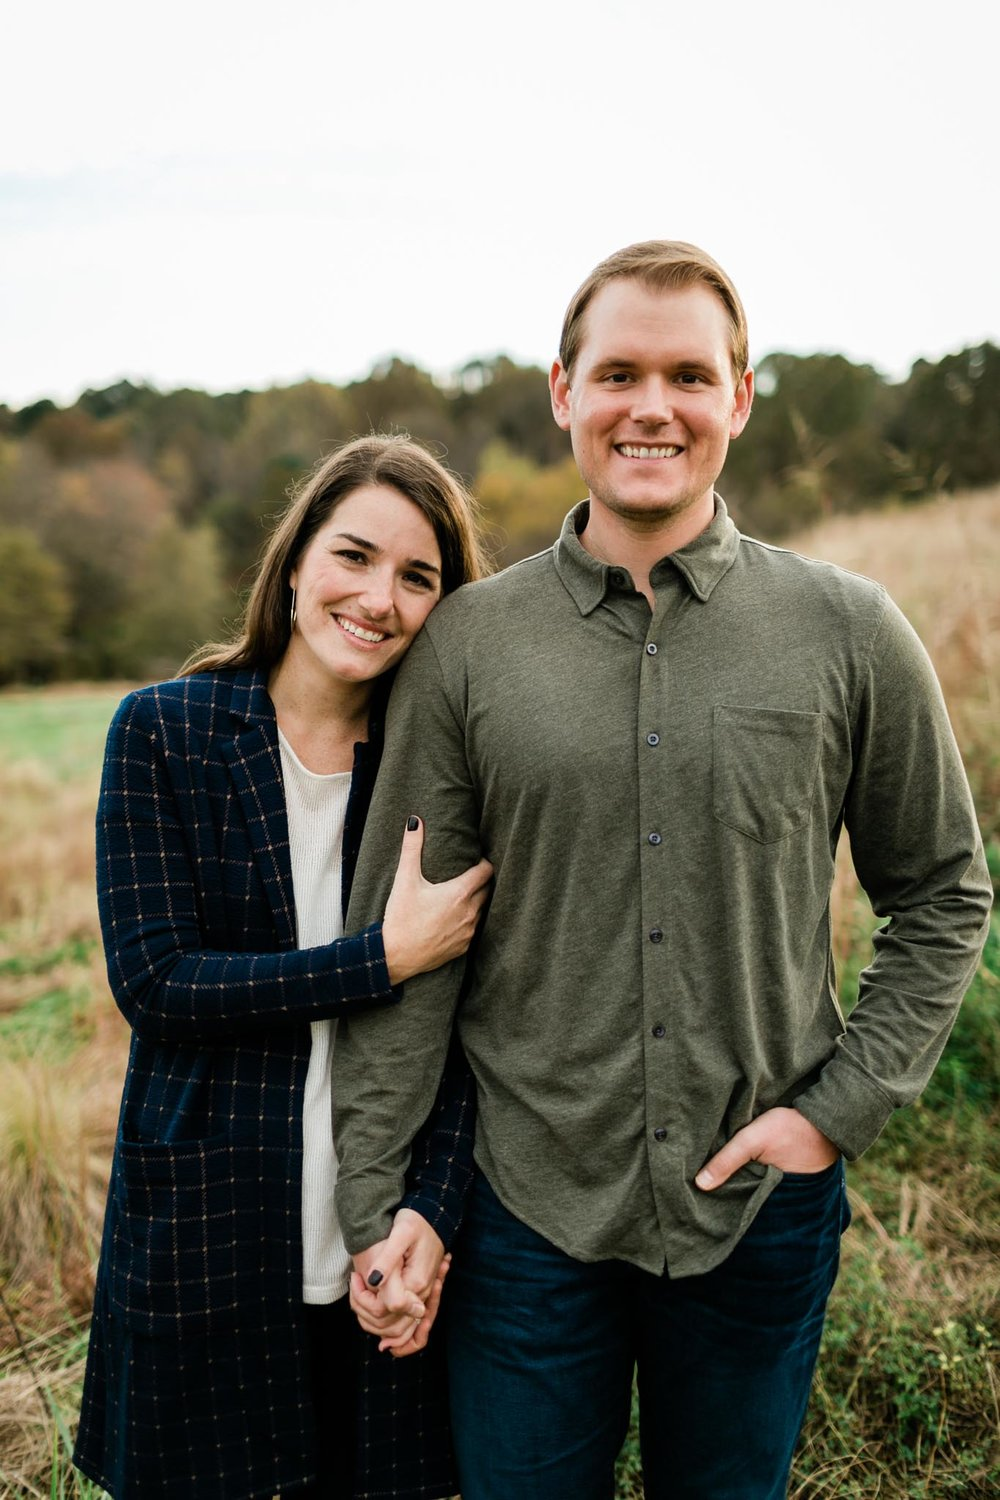 Couple Photo Shoot outdoors at NC Museum of Art | Raleigh Photographer | By G. Lin Photography